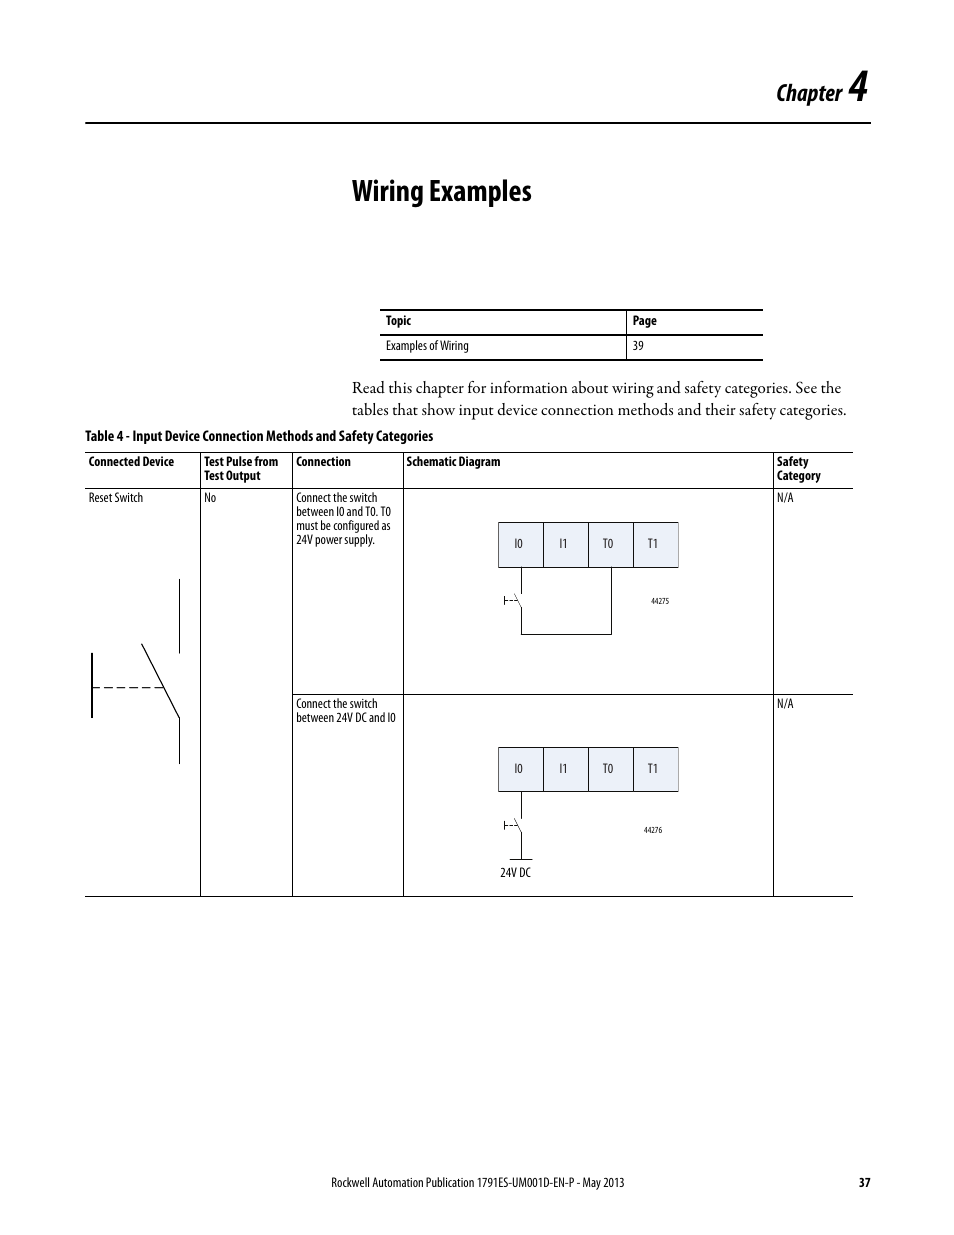 4 - wiring examples, Chapter 4, Wiring examples | Rockwell Automation  1791ES-IB16 Guard I/O EtherNet/IP Safety Modules User Manual | Page 37 / 100